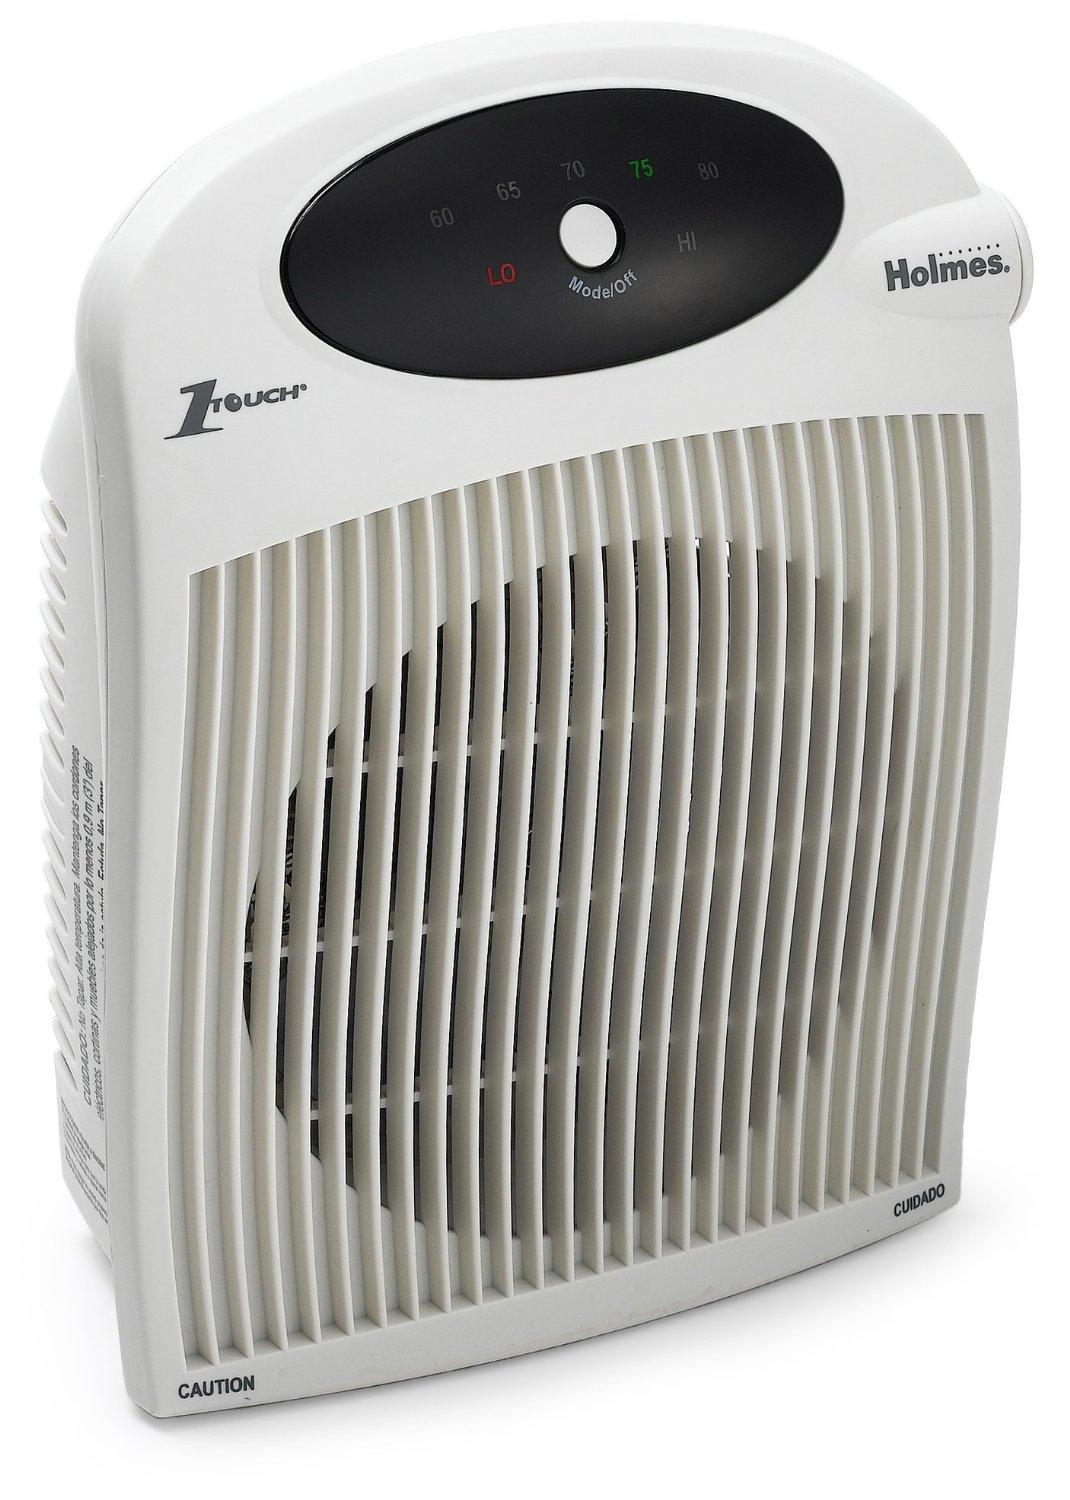 Holmes Heater With 1touch Control And Bathroom Safe Plug Space Heaters